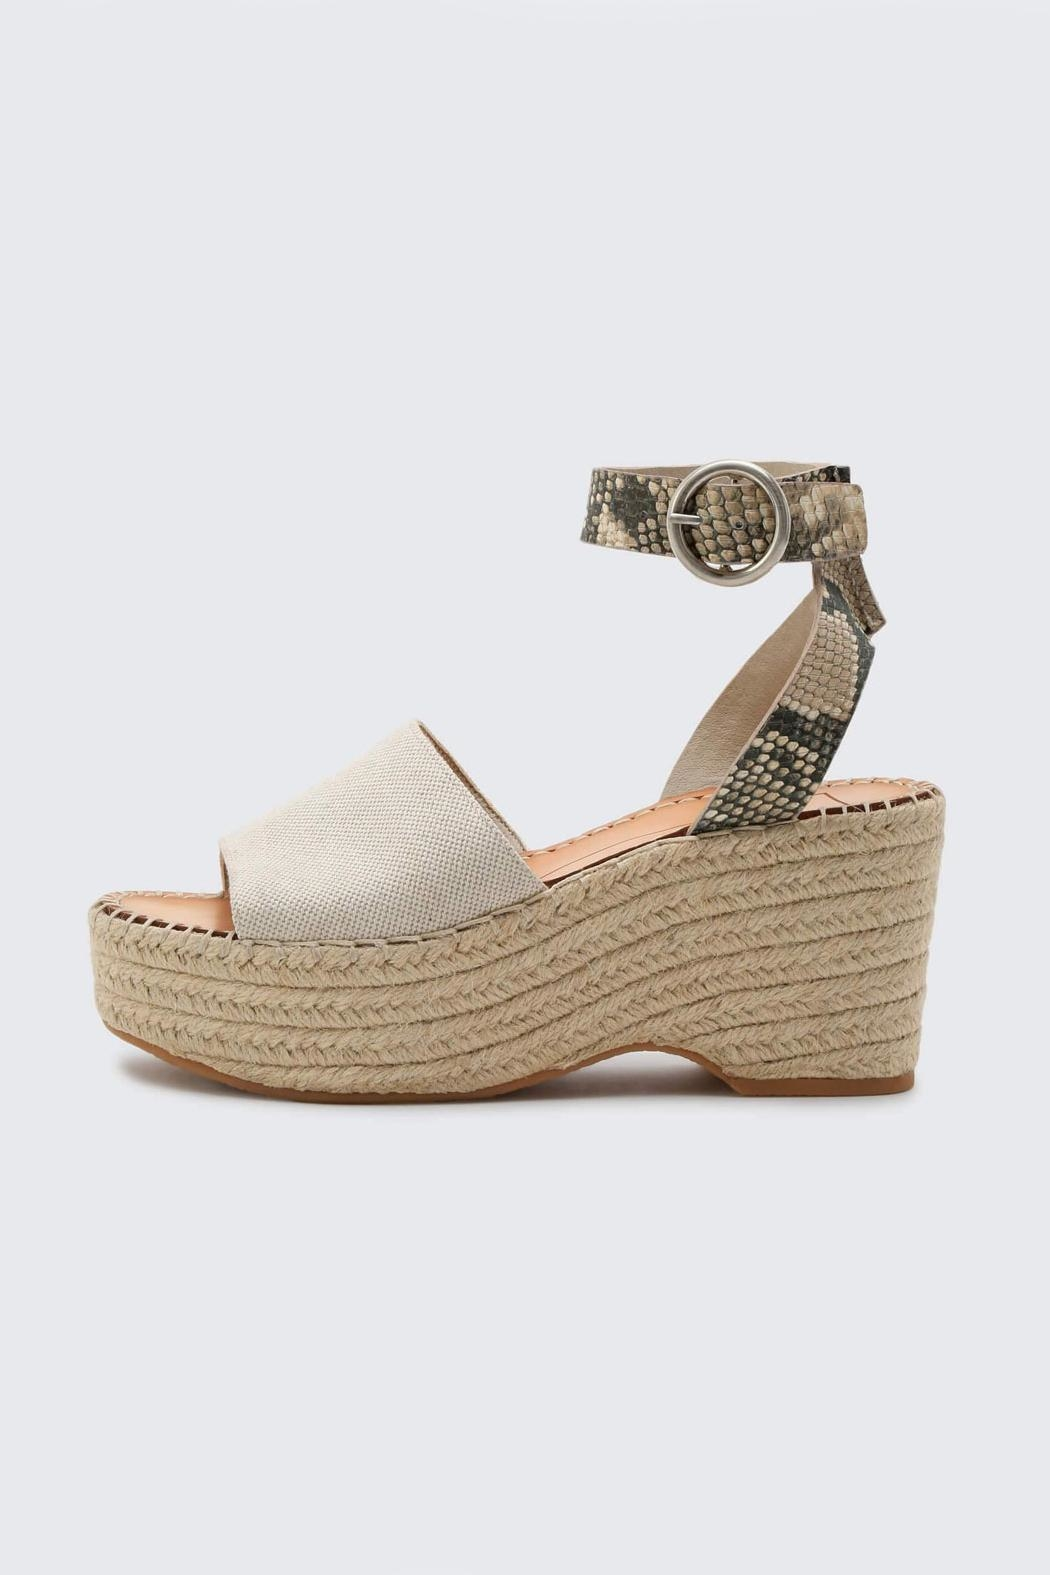 548e7411b531 Dolce Vita Lesly Espadrille Wedge from South Carolina by Baehr Feet ...